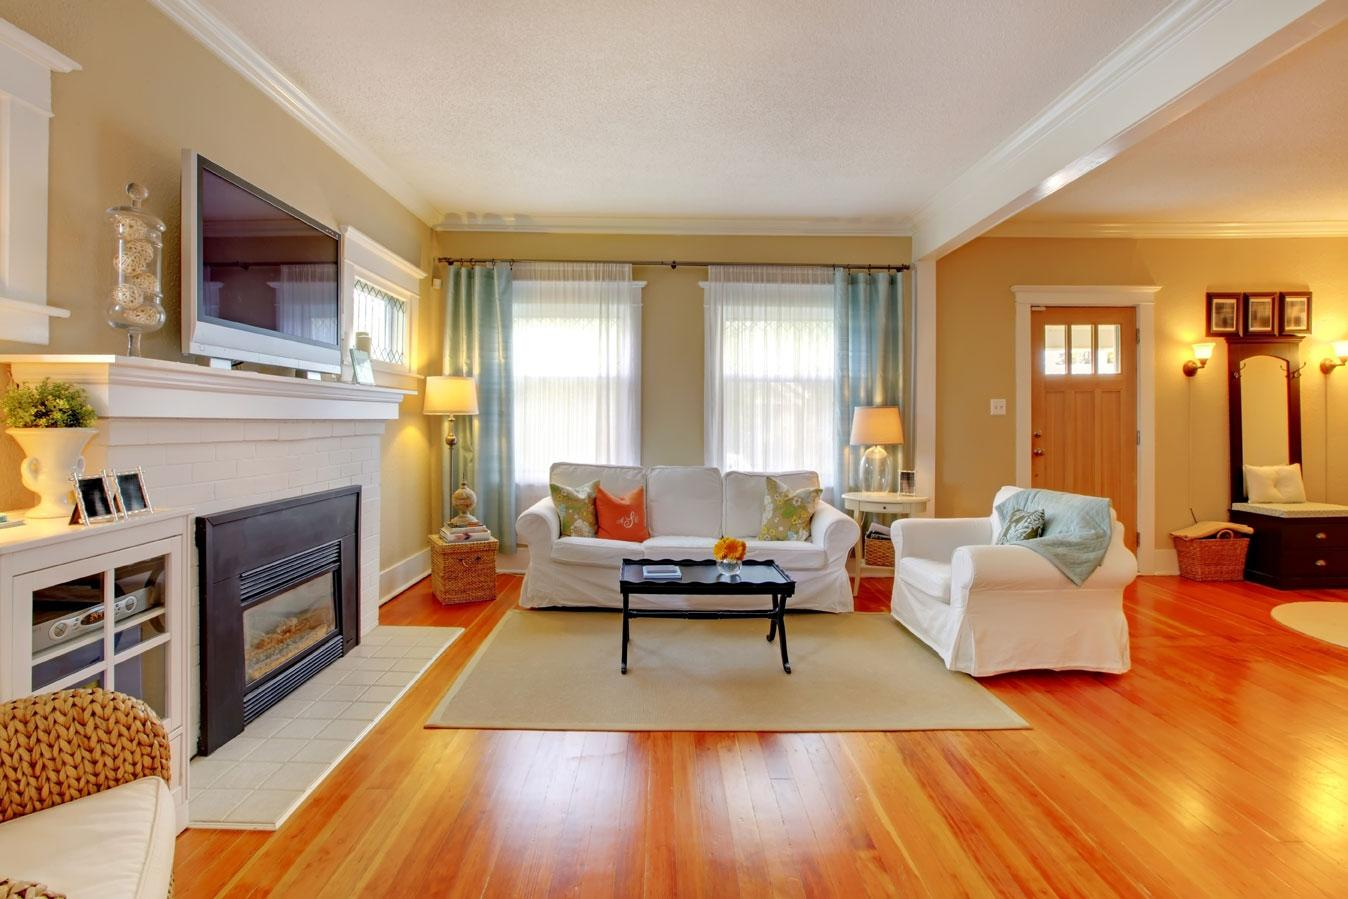 3 factors to consider before hiring an interior painting Home interiors company